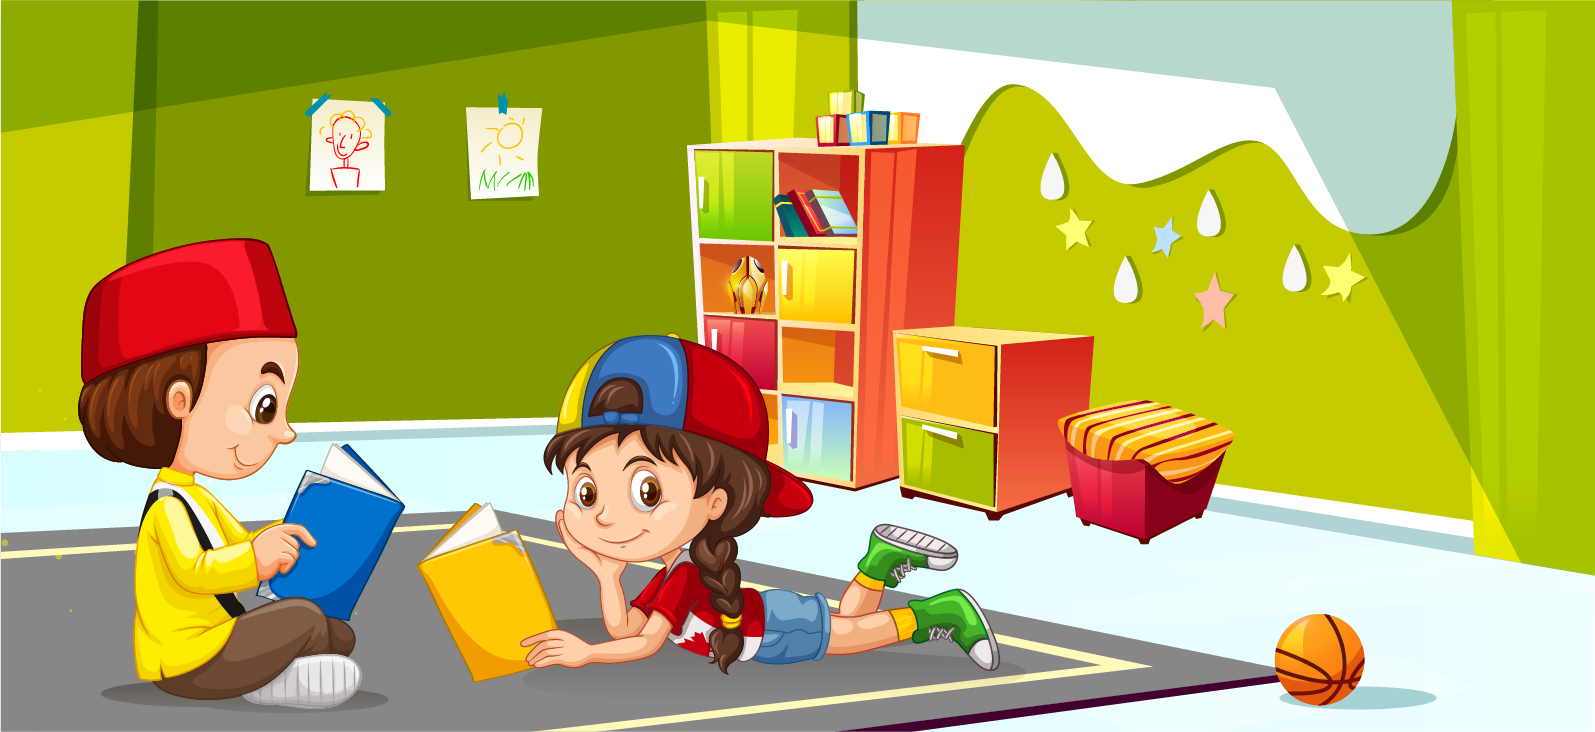 Children playing in playroom Premium Vector